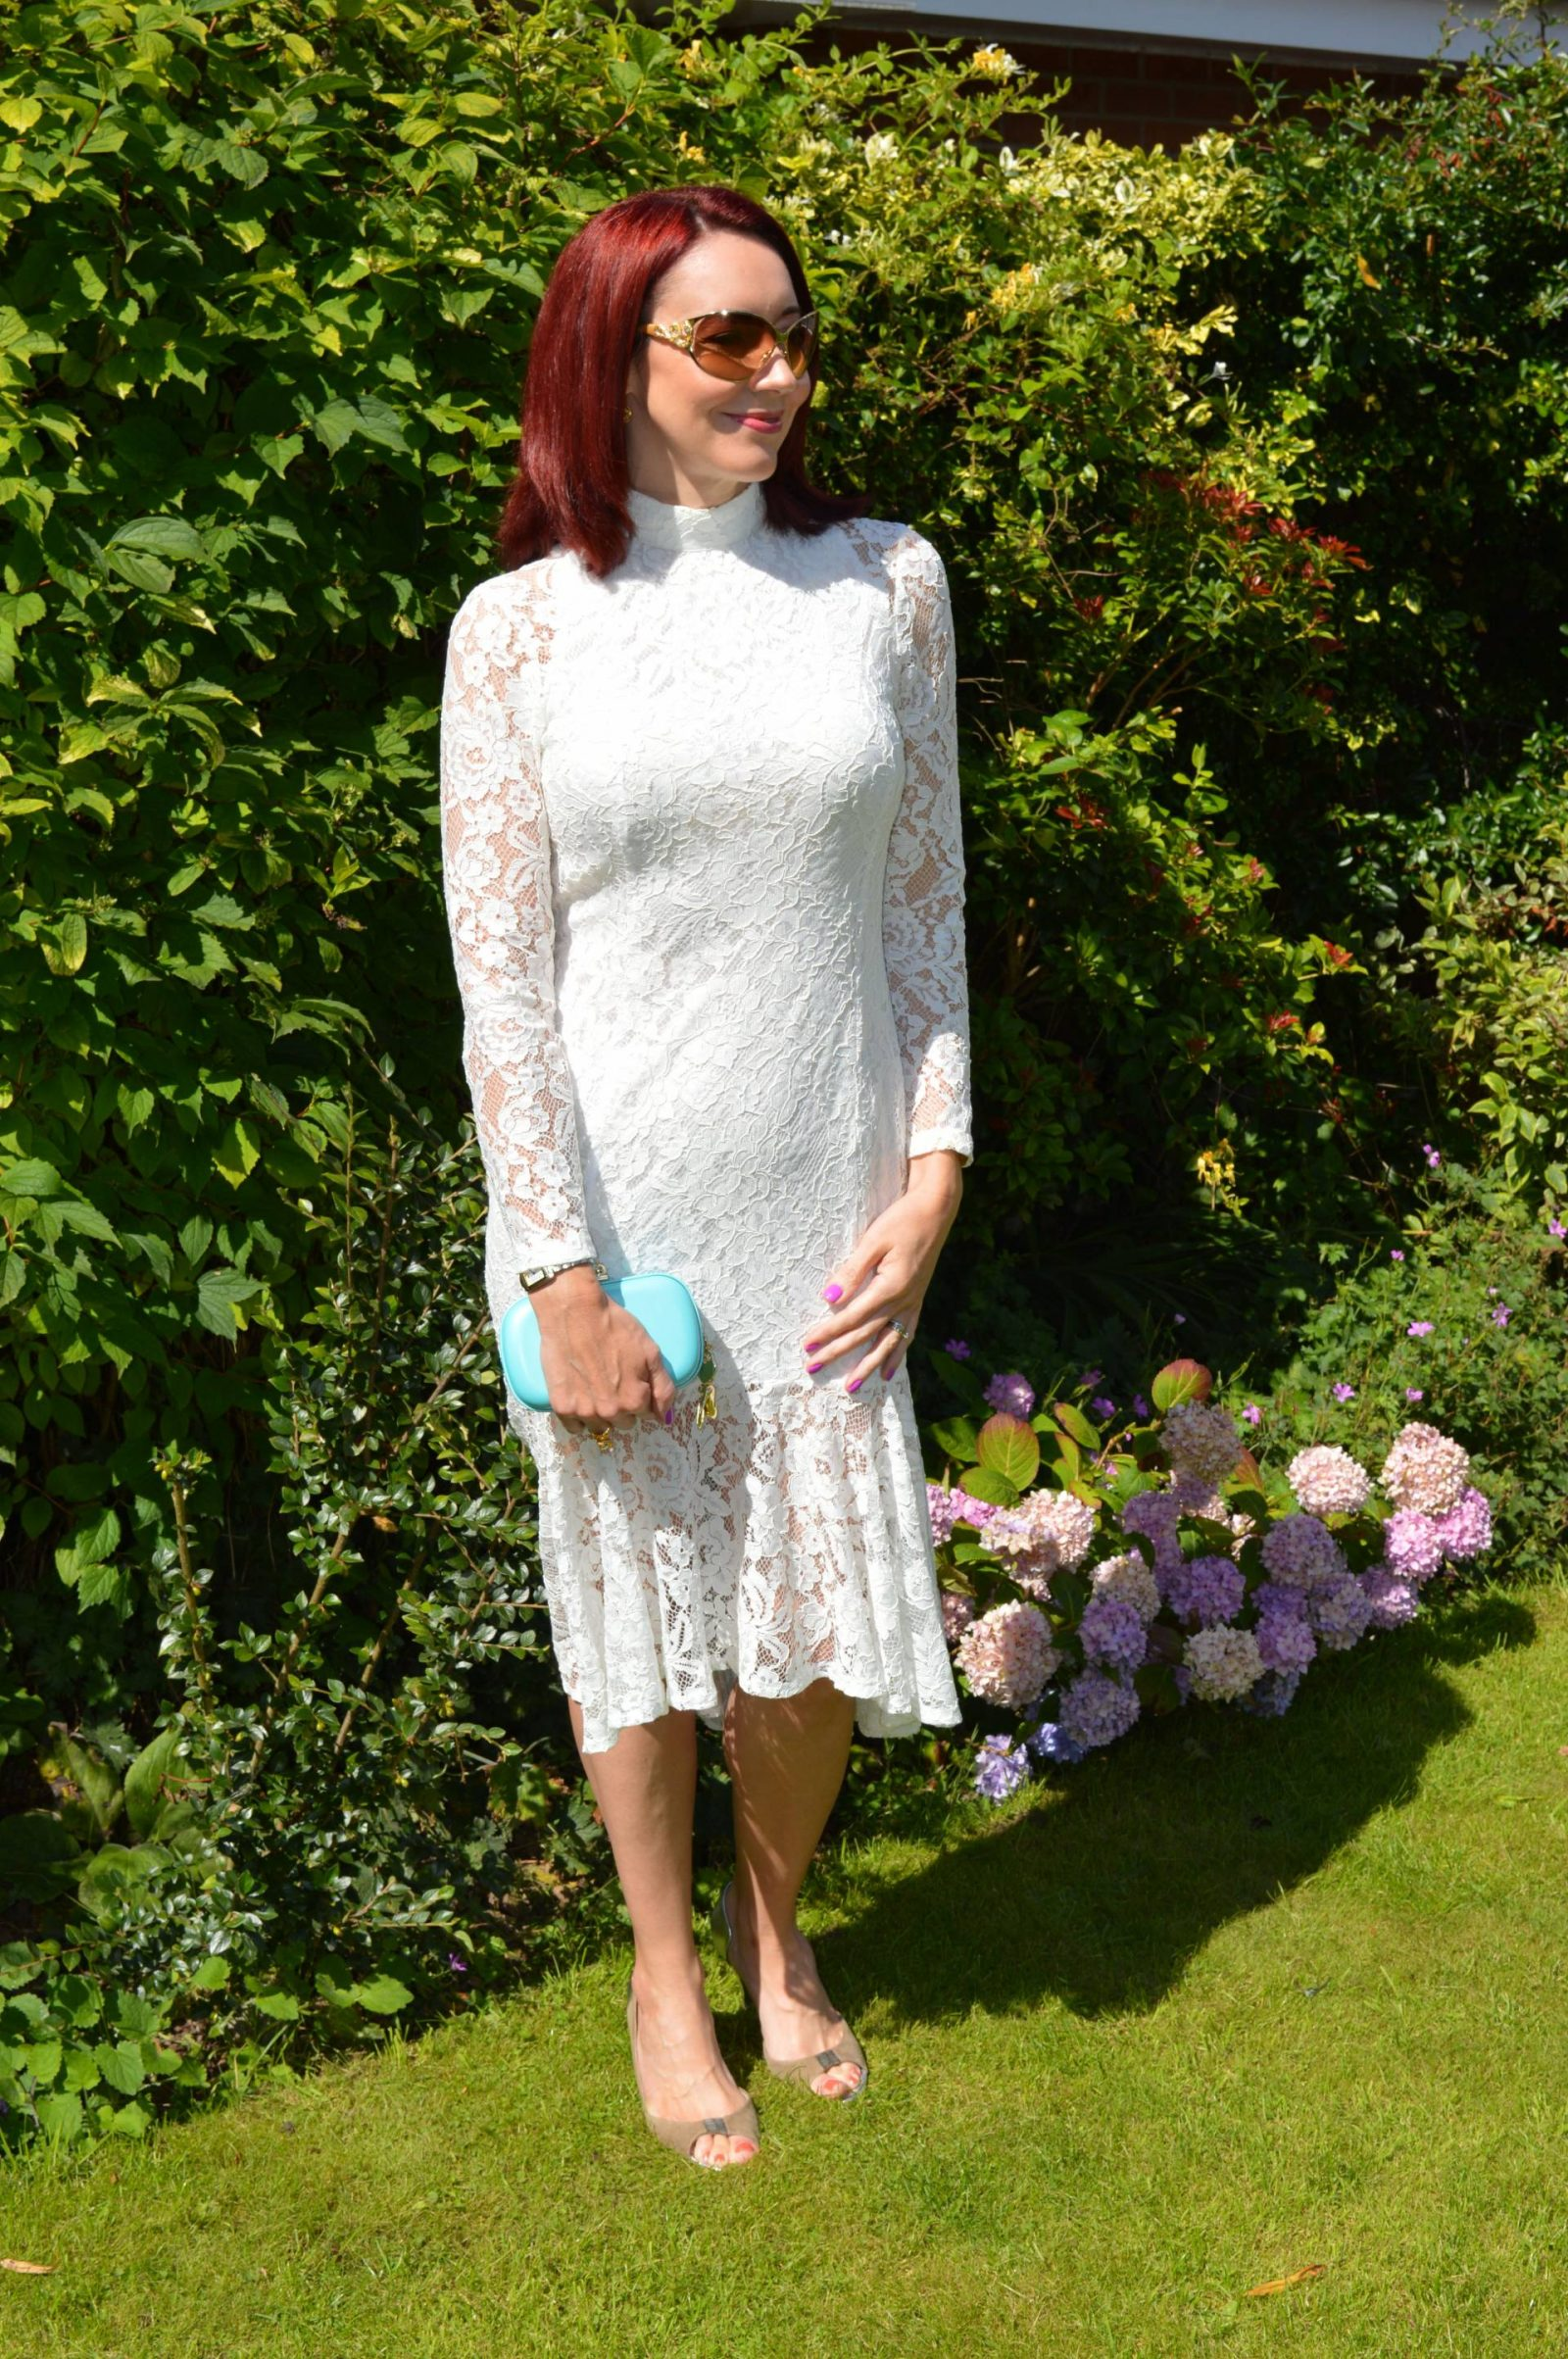 Wedding Guest Dresses From PrettLittle Thing Ellina white lace fishtail dress Anna Dello Russo H&M clutch bag